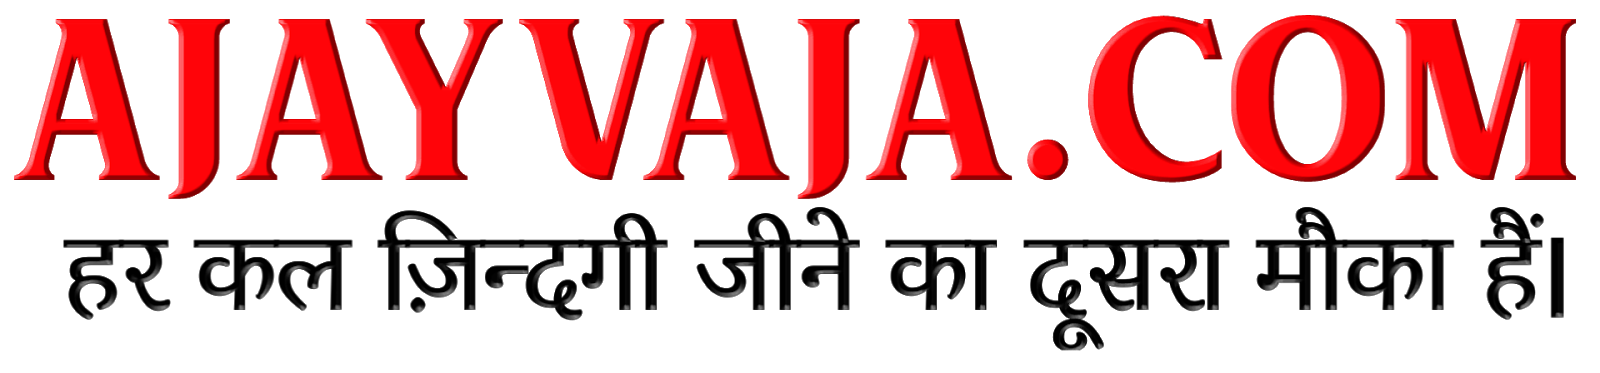 Ajayvaja.com - shayari collection ||